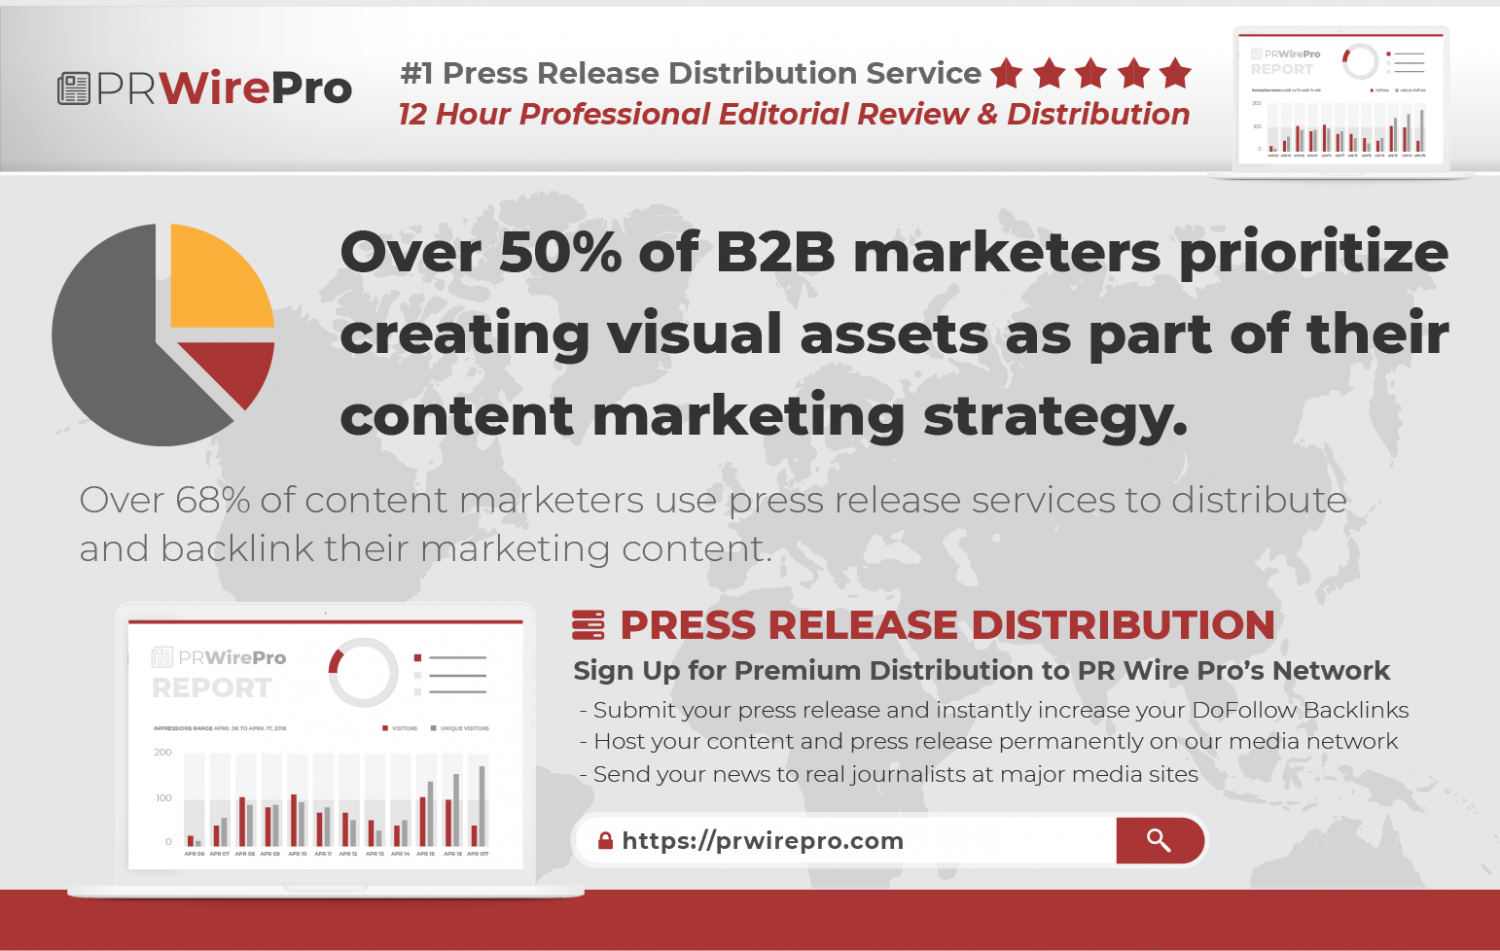 PRESS RELEASE NEWS MARKETING STATISTICS - AD plus INFOGRAPHIC Infographic